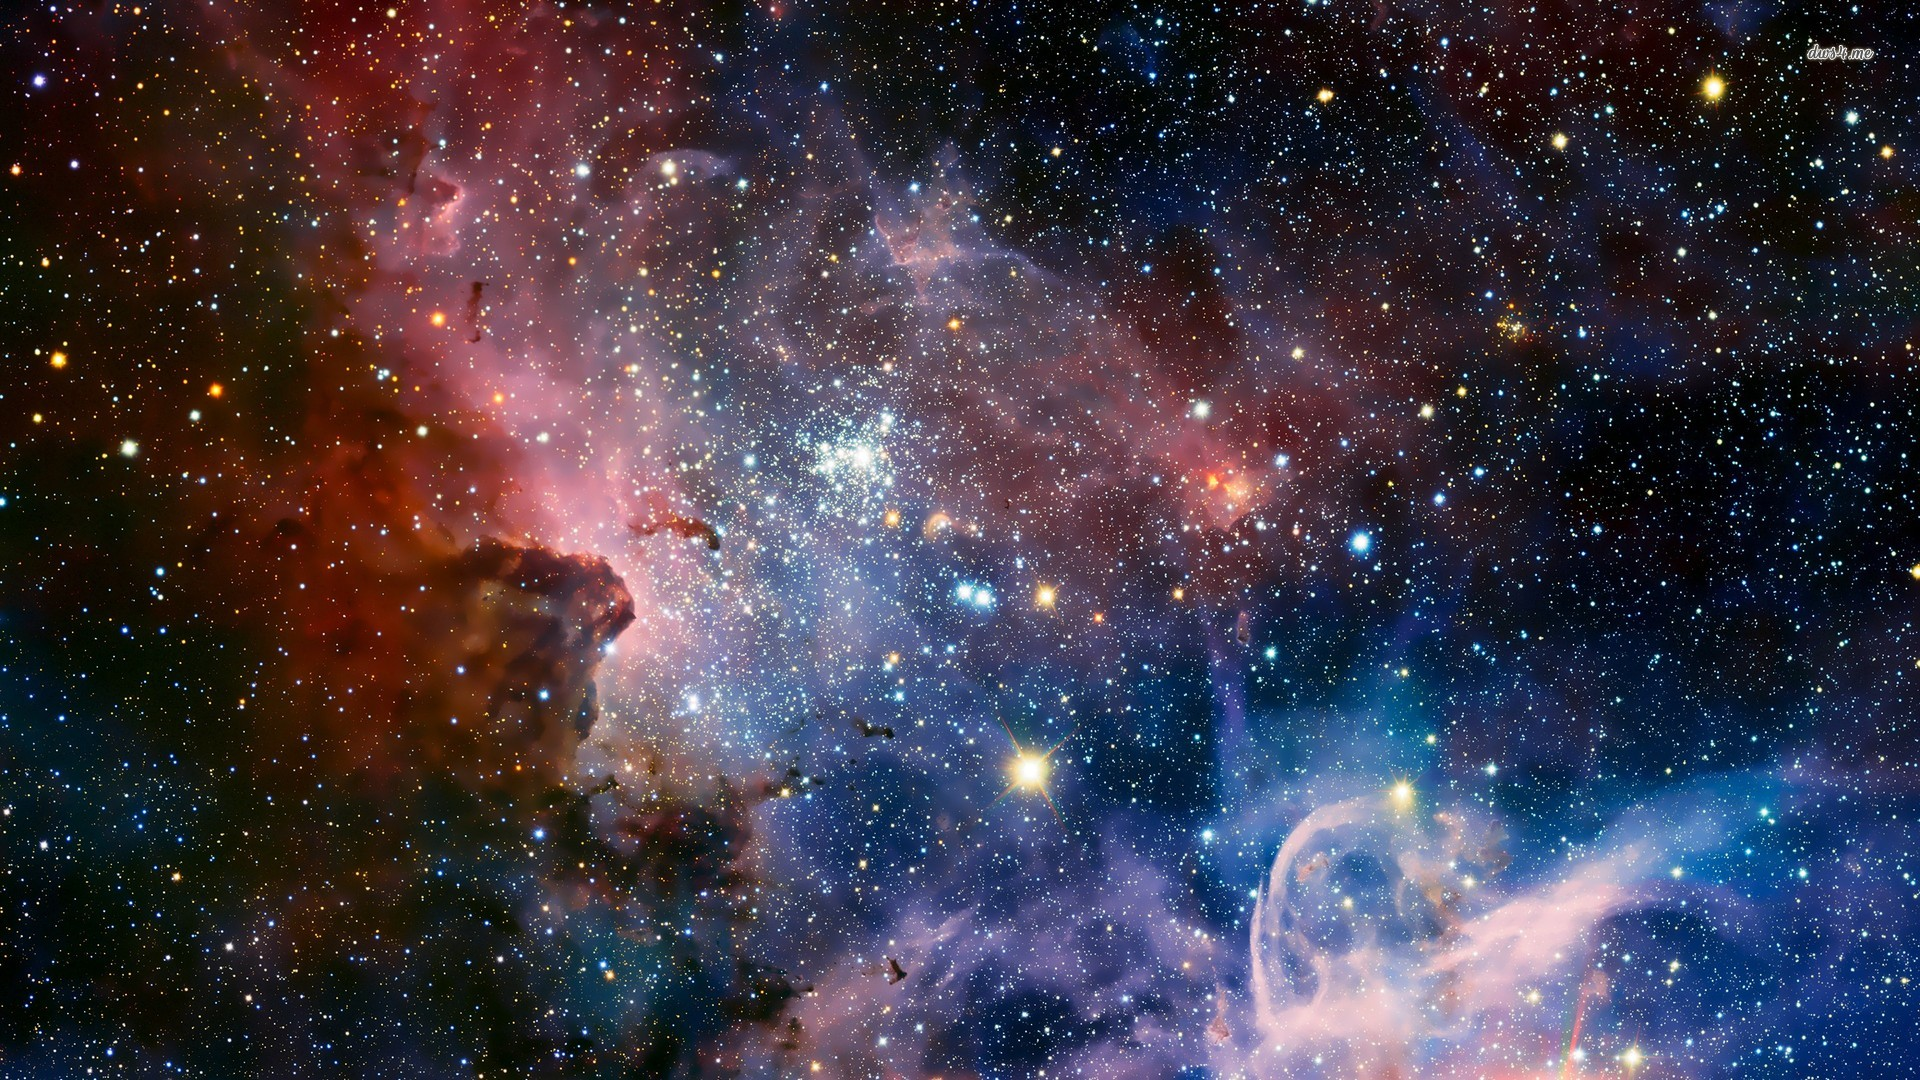 Download Largest Collection of HD Space Wallpapers For Free 1920x1080